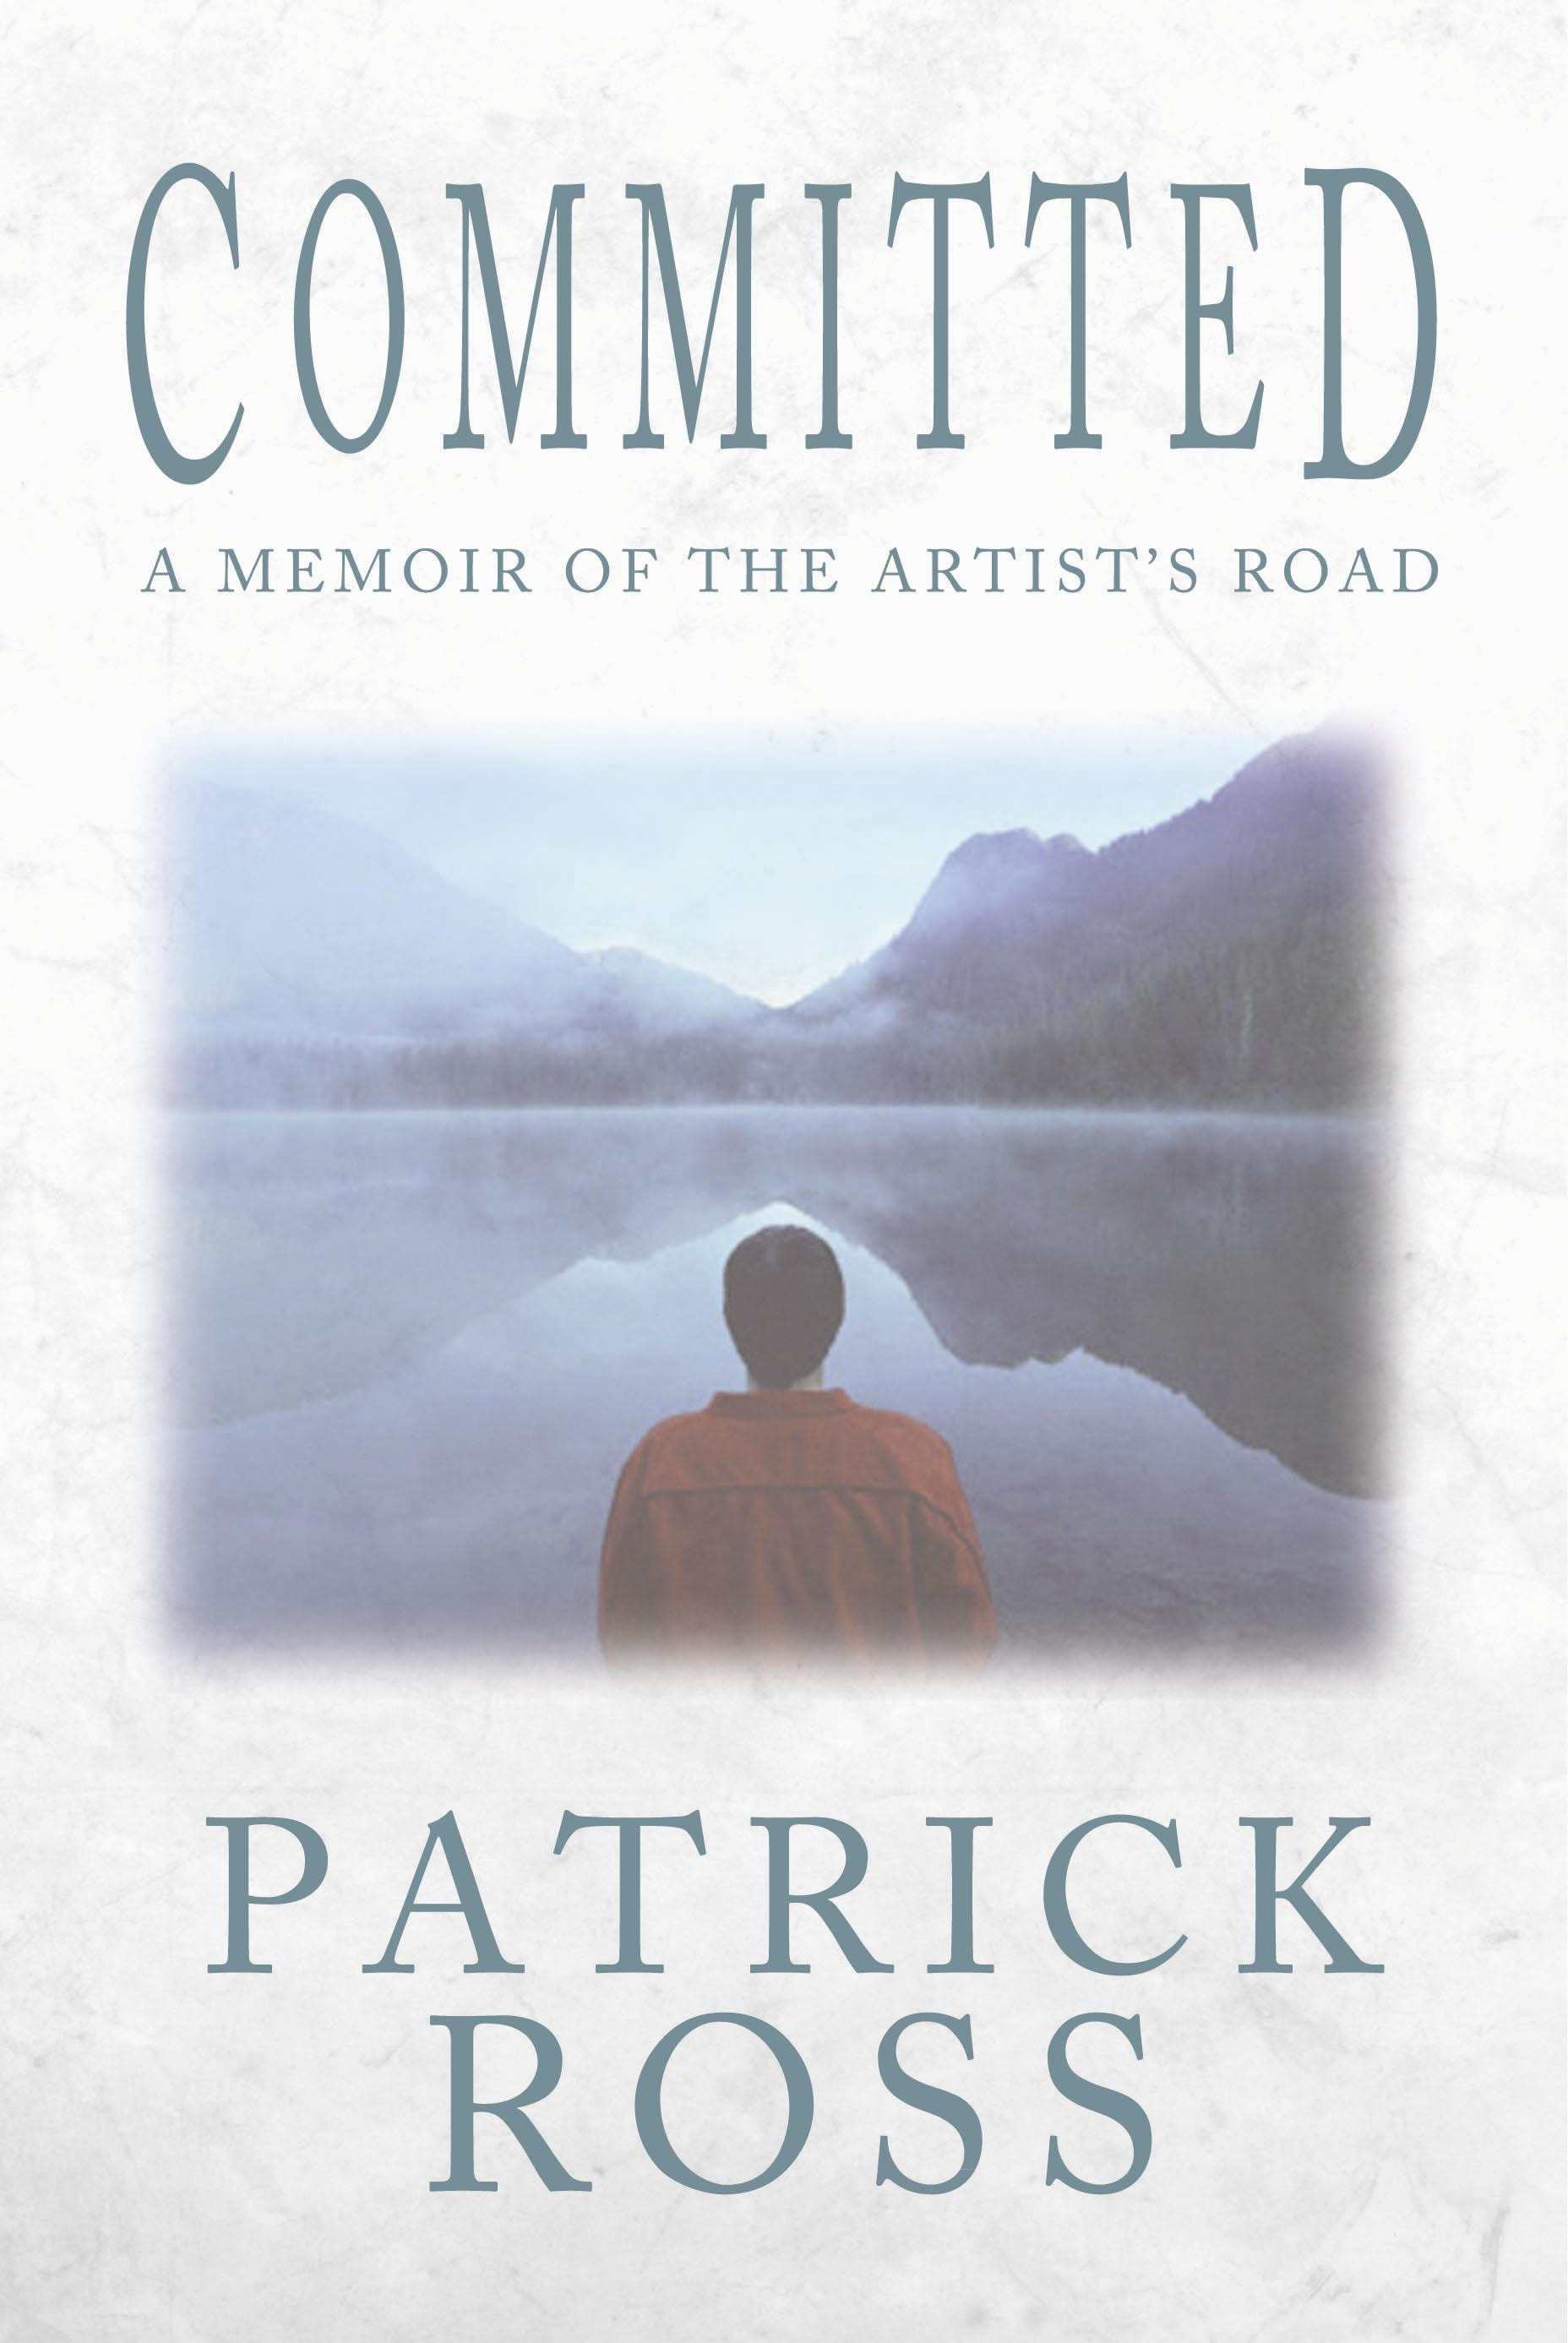 Committed: A Memoir of the Artist's Road – Patrick Ross